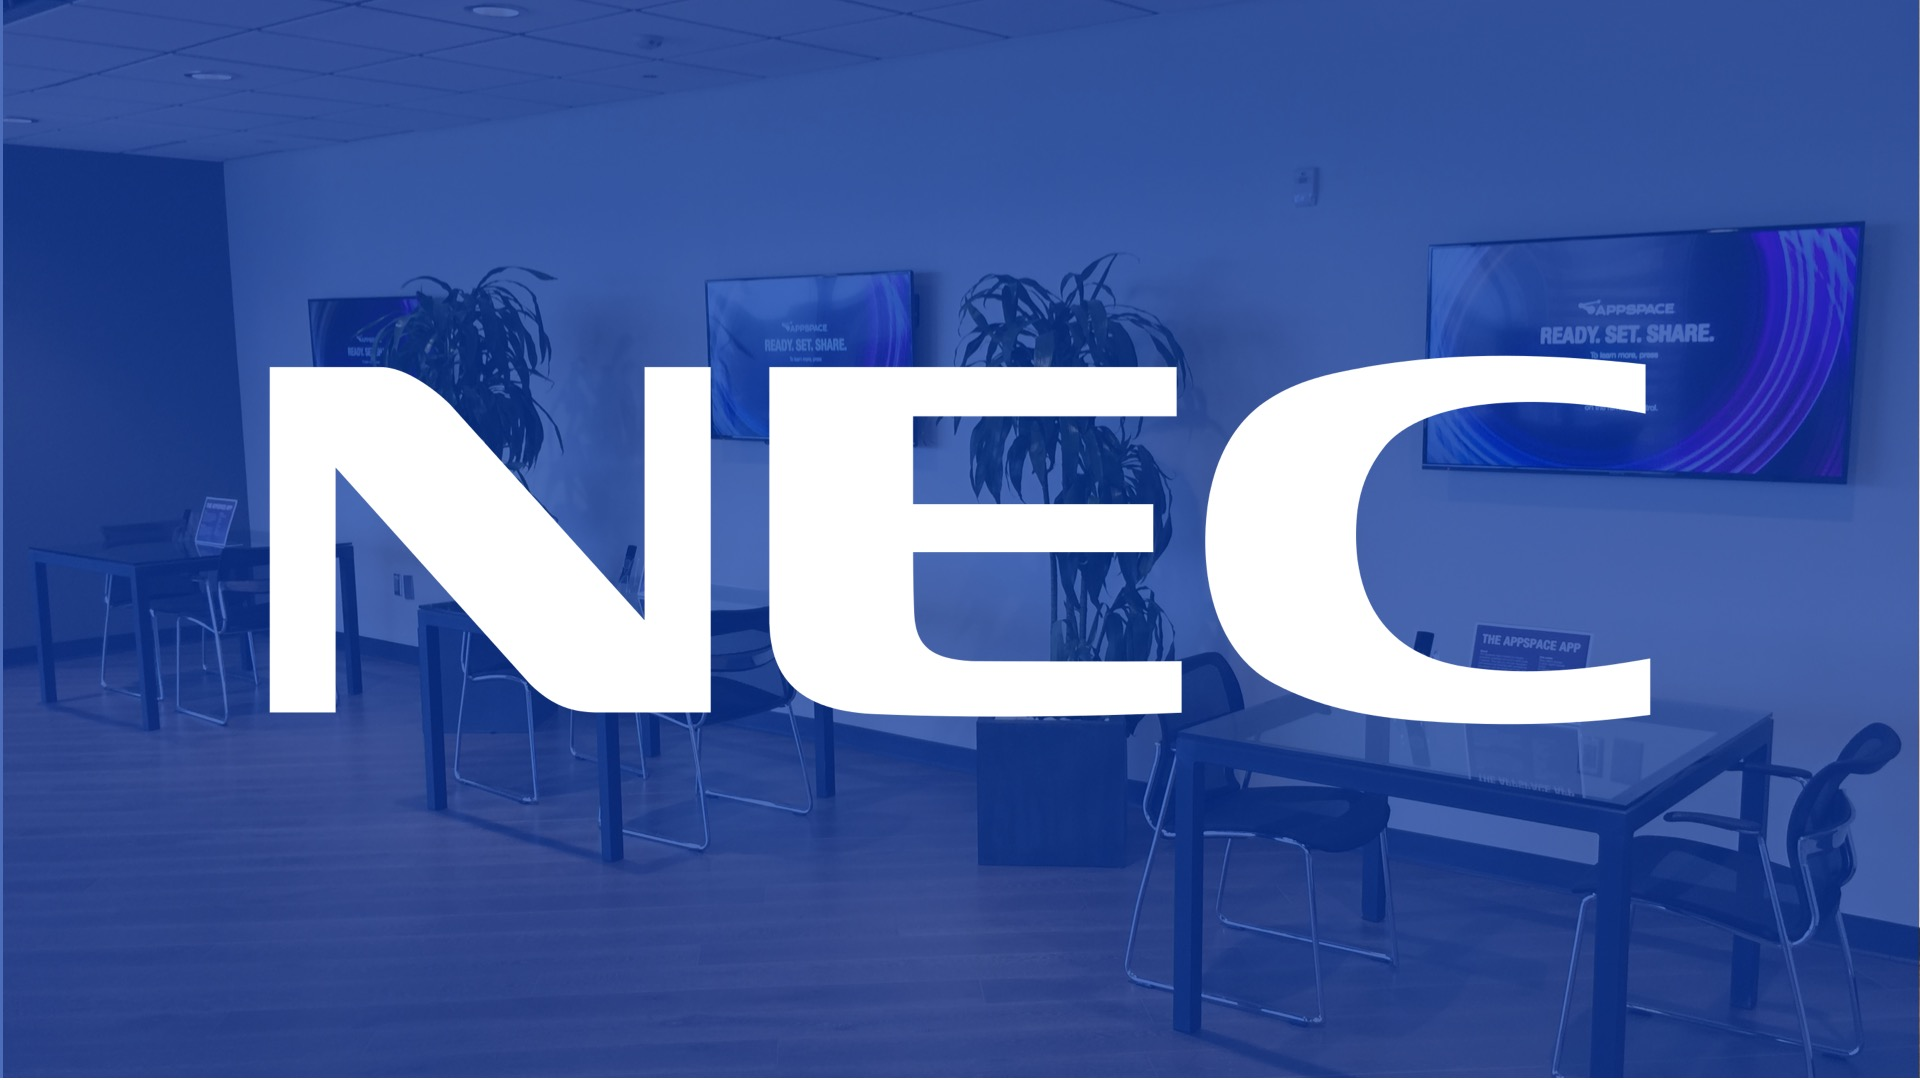 Nec Adds Interactivity And Ops Demos To The Dallas Showcase